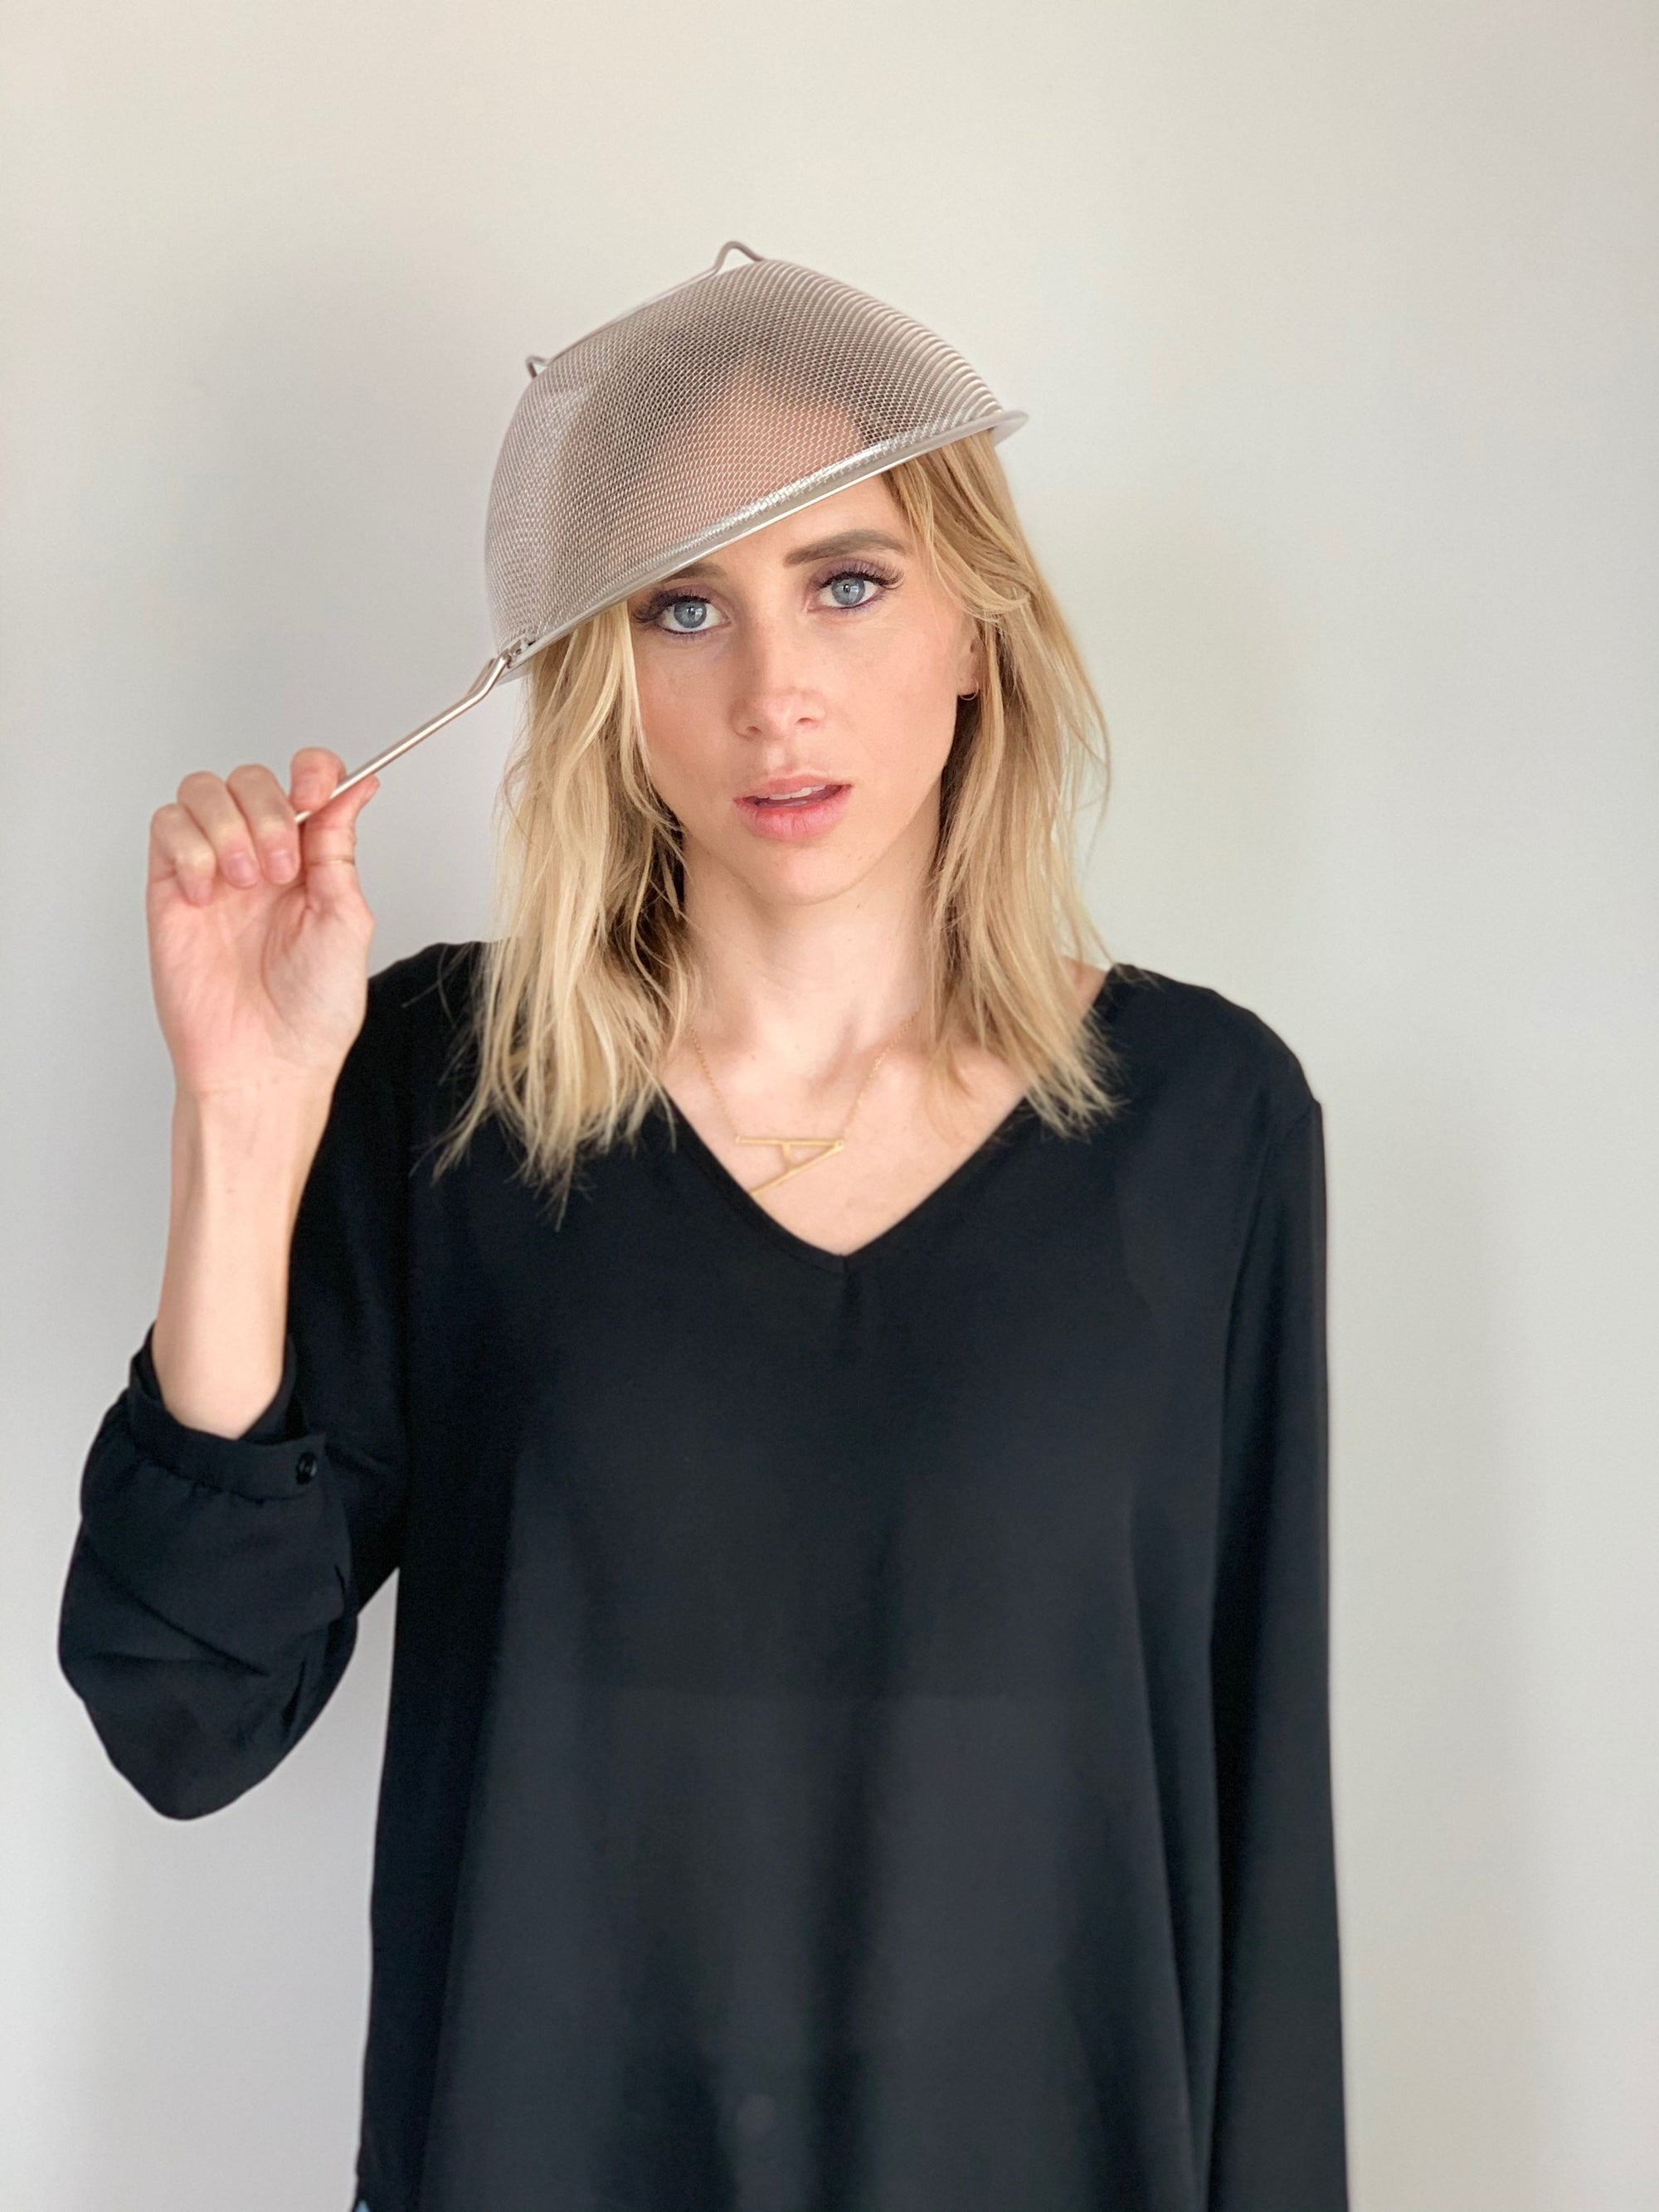 GIGI PIP Hats for Women- Käləndər Radial Crown Hat-